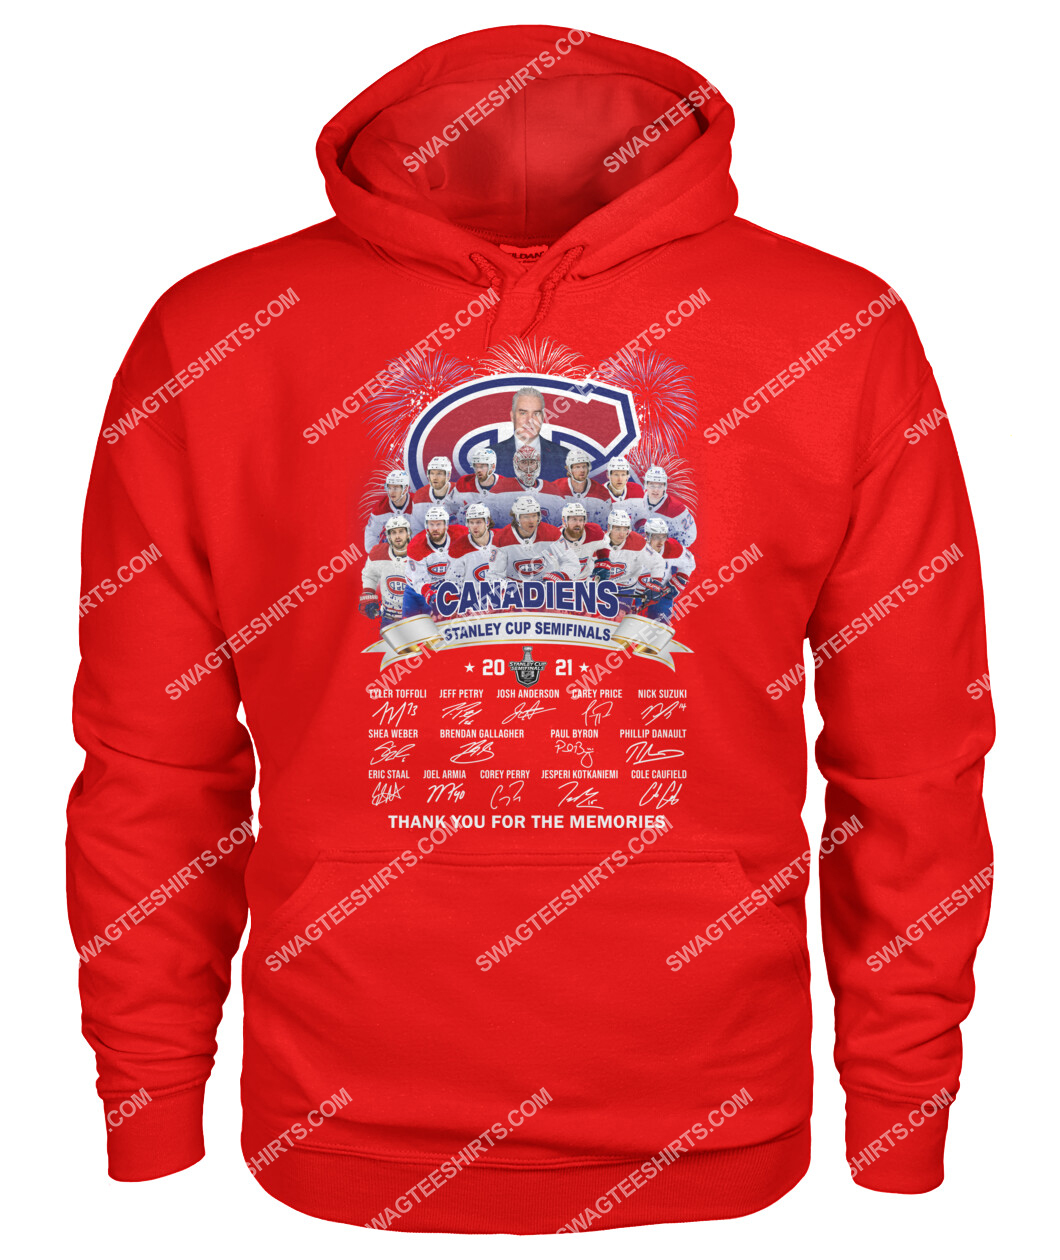 montreal canadiens stanley cup semifinals 2021 thank you for the memories signature hoodie 1